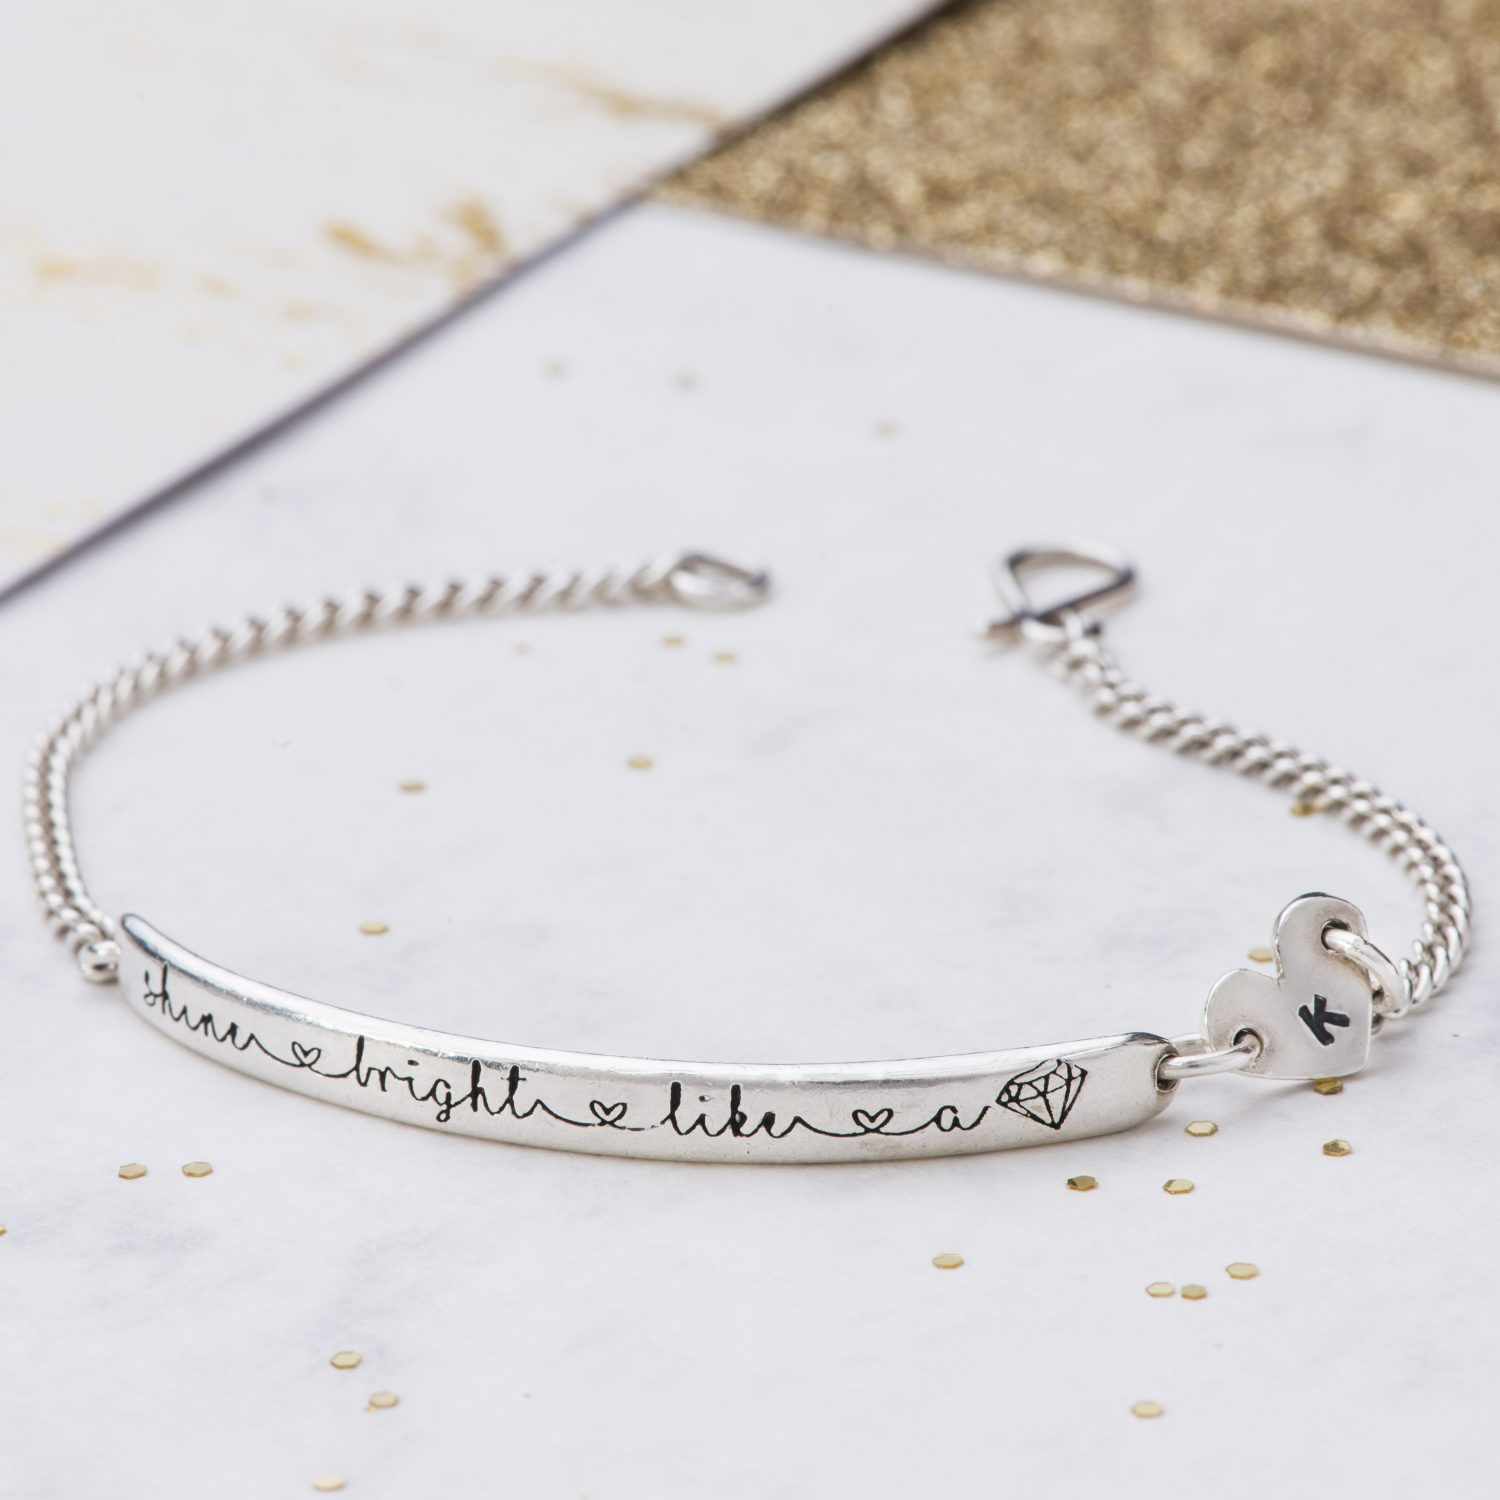 is within charm expandable stainless tagged collections bangle inspirational quote message need all me i word steel quotes positive bracelets and energy bracelet stacking